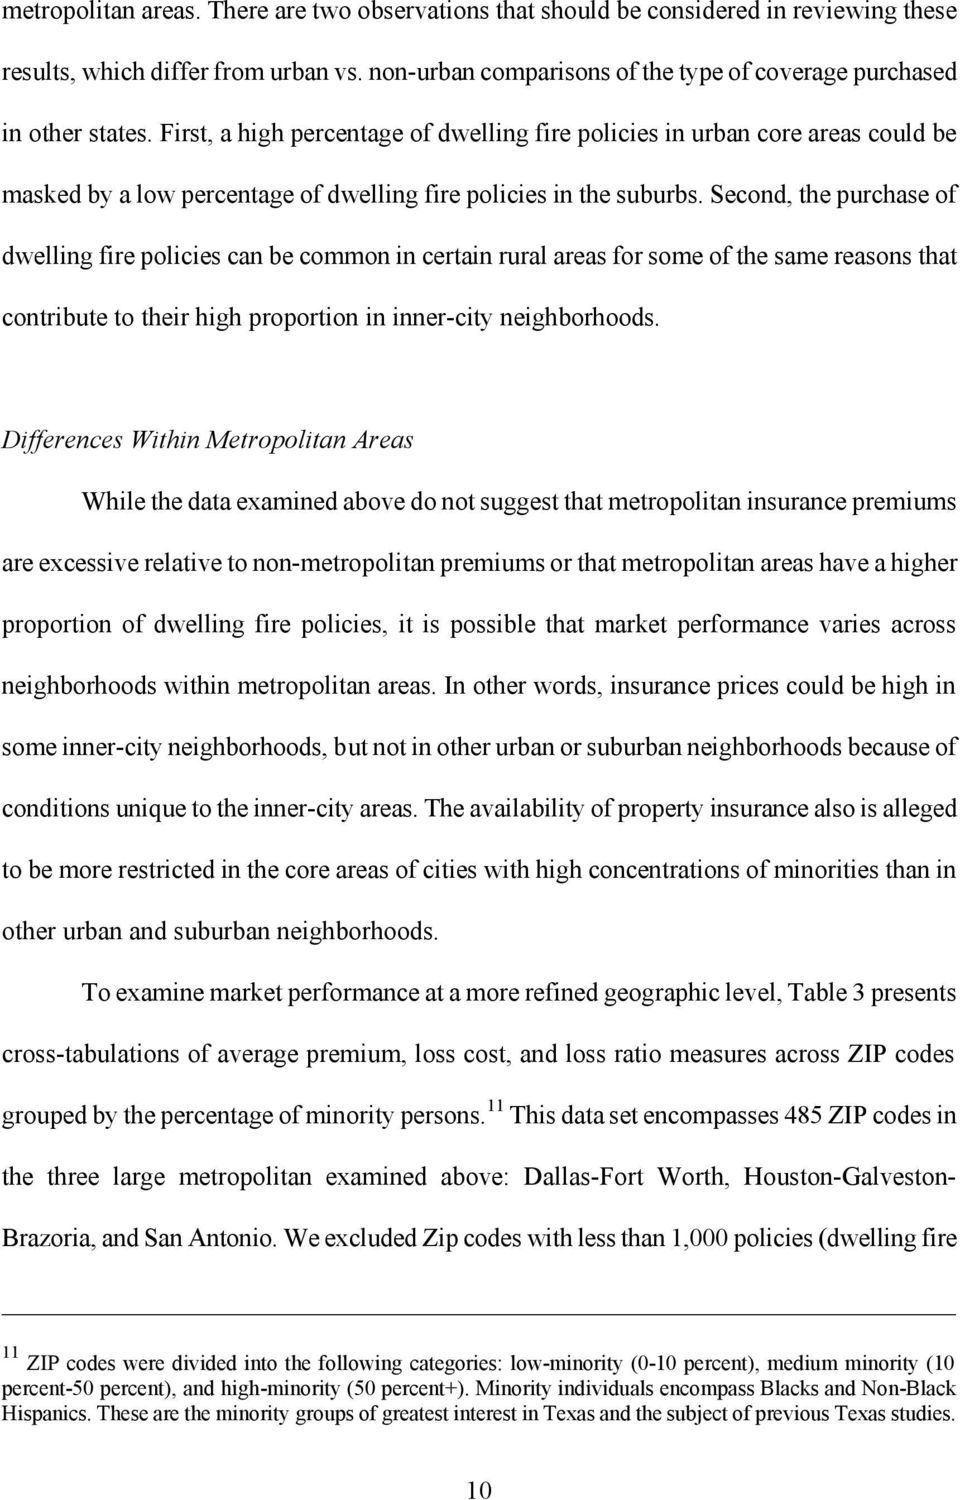 First, a high percentage of dwelling fire policies in urban core areas could be masked by a low percentage of dwelling fire policies in the suburbs.